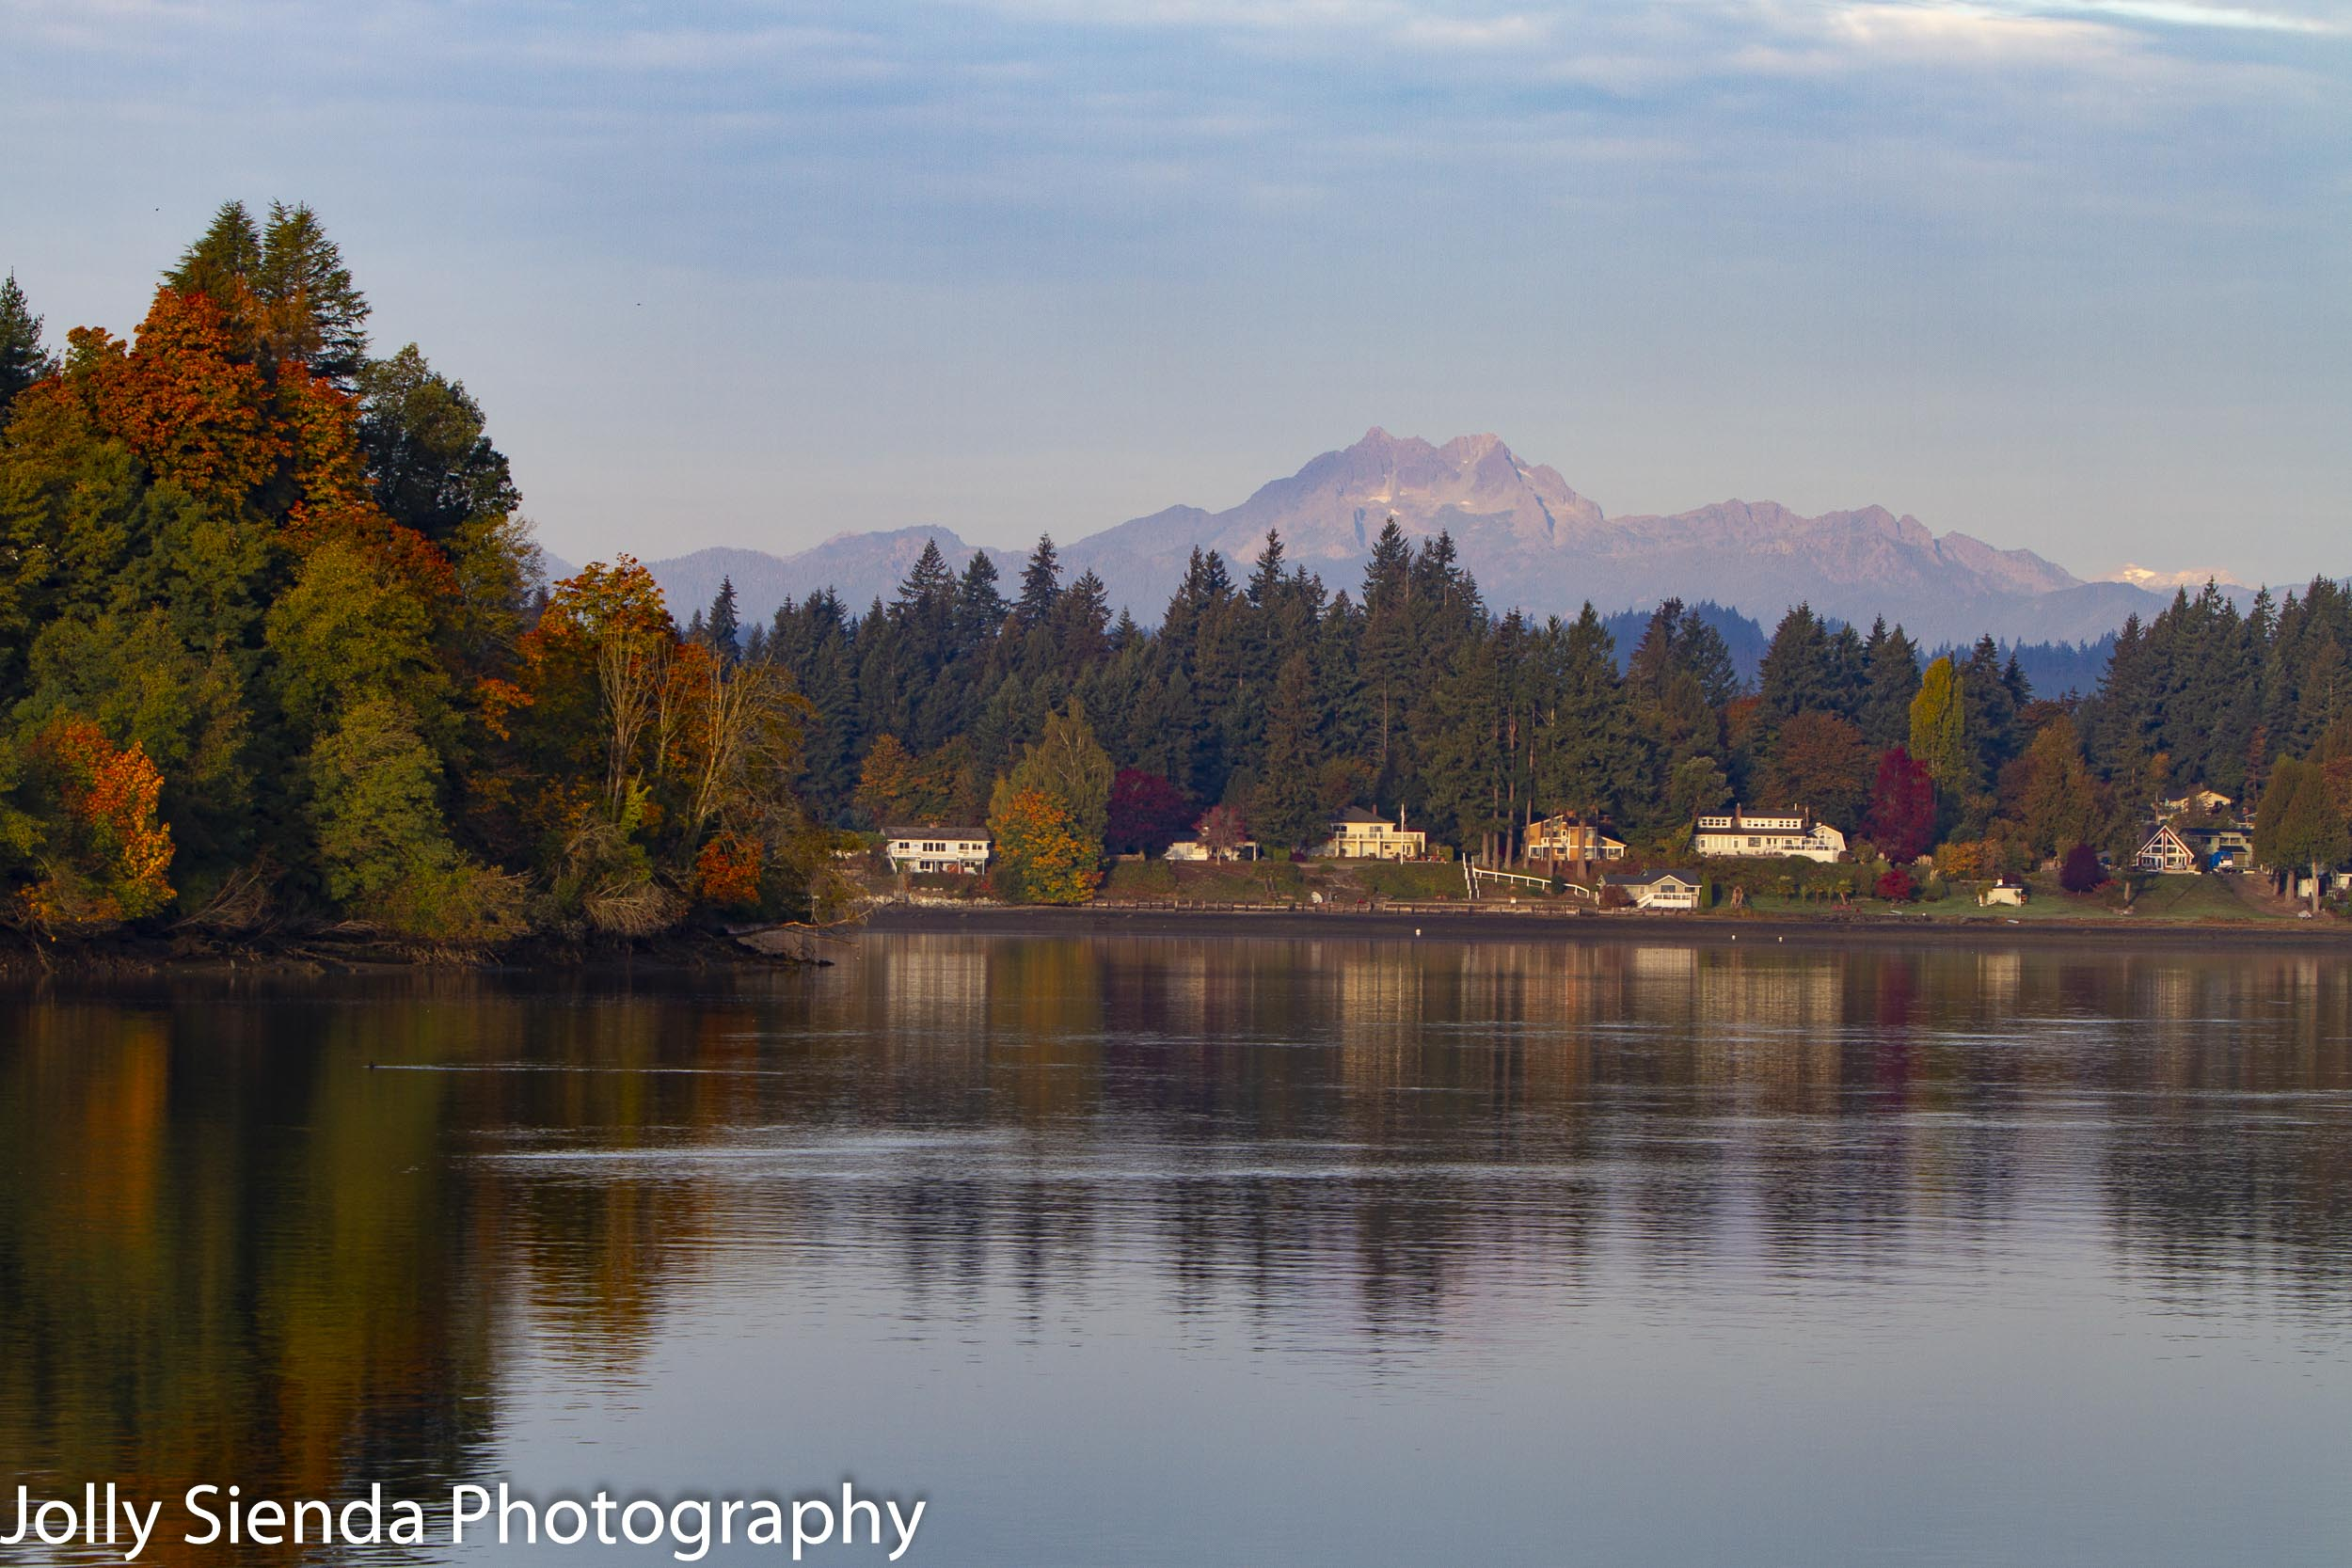 The Olympic Mountains (Brothers Mountain) and beautiful Autumn color on the Puget Sound, Bremerton, Washington